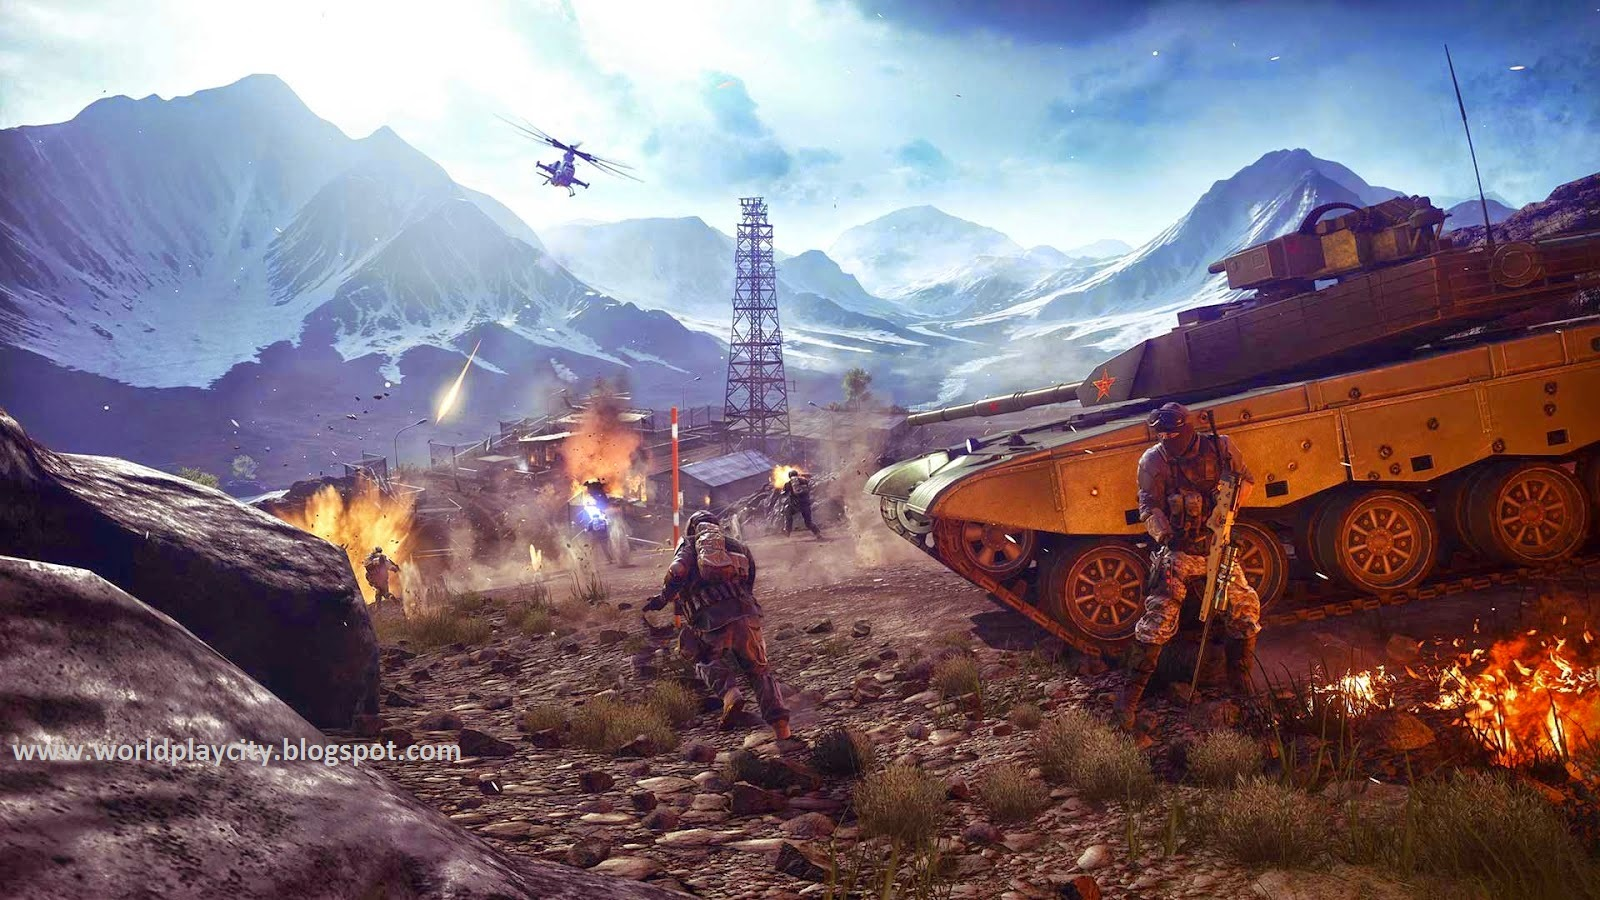 battlefield 4 play on windows 7 free download